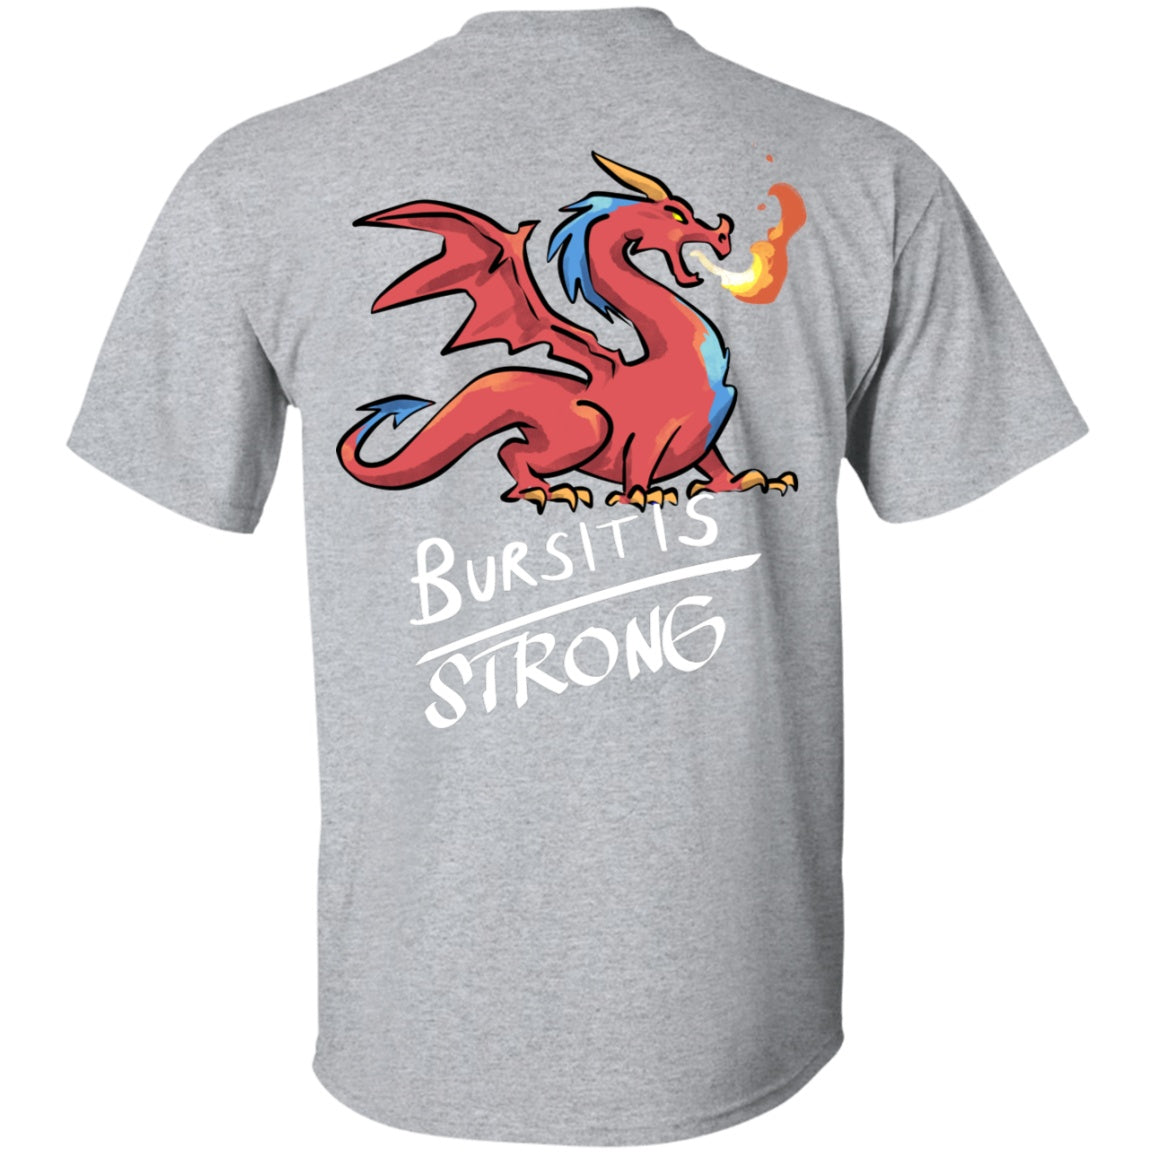 Bursitis Strong Dragon Unisex T-Shirt - The Unchargeables